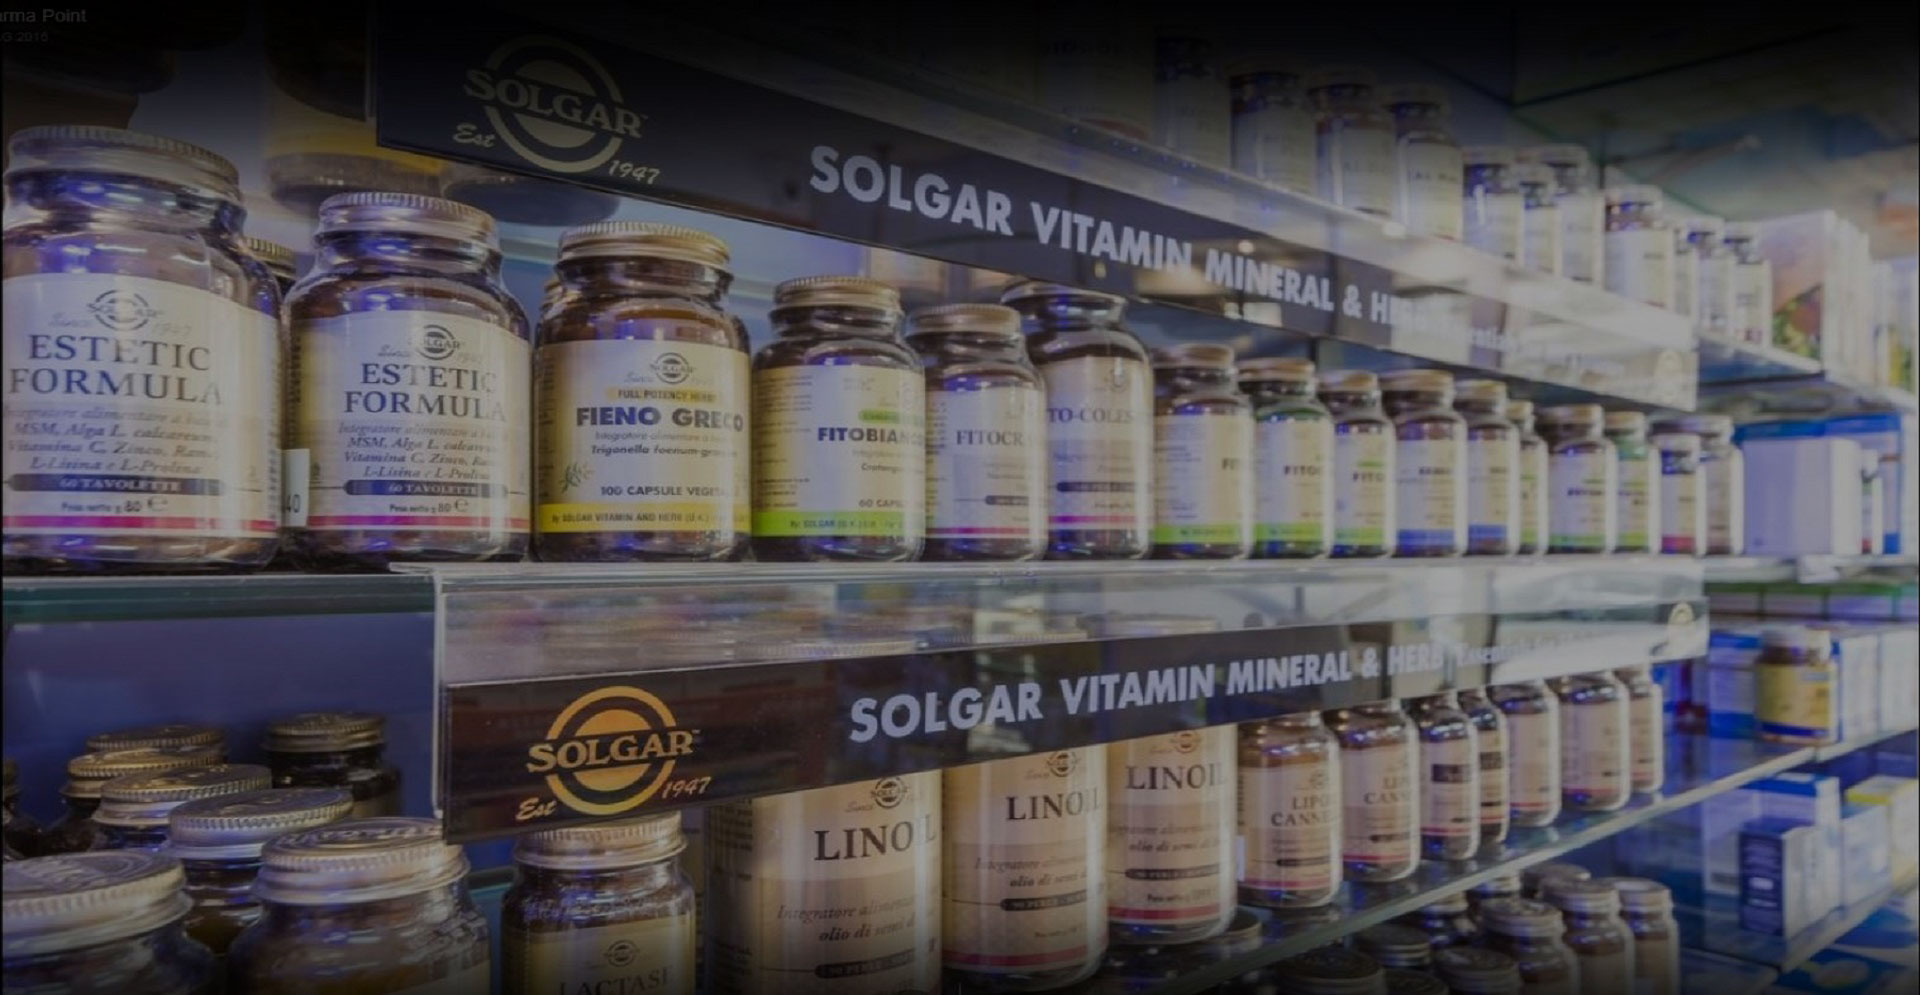 Solgar Supplements and Vitamins